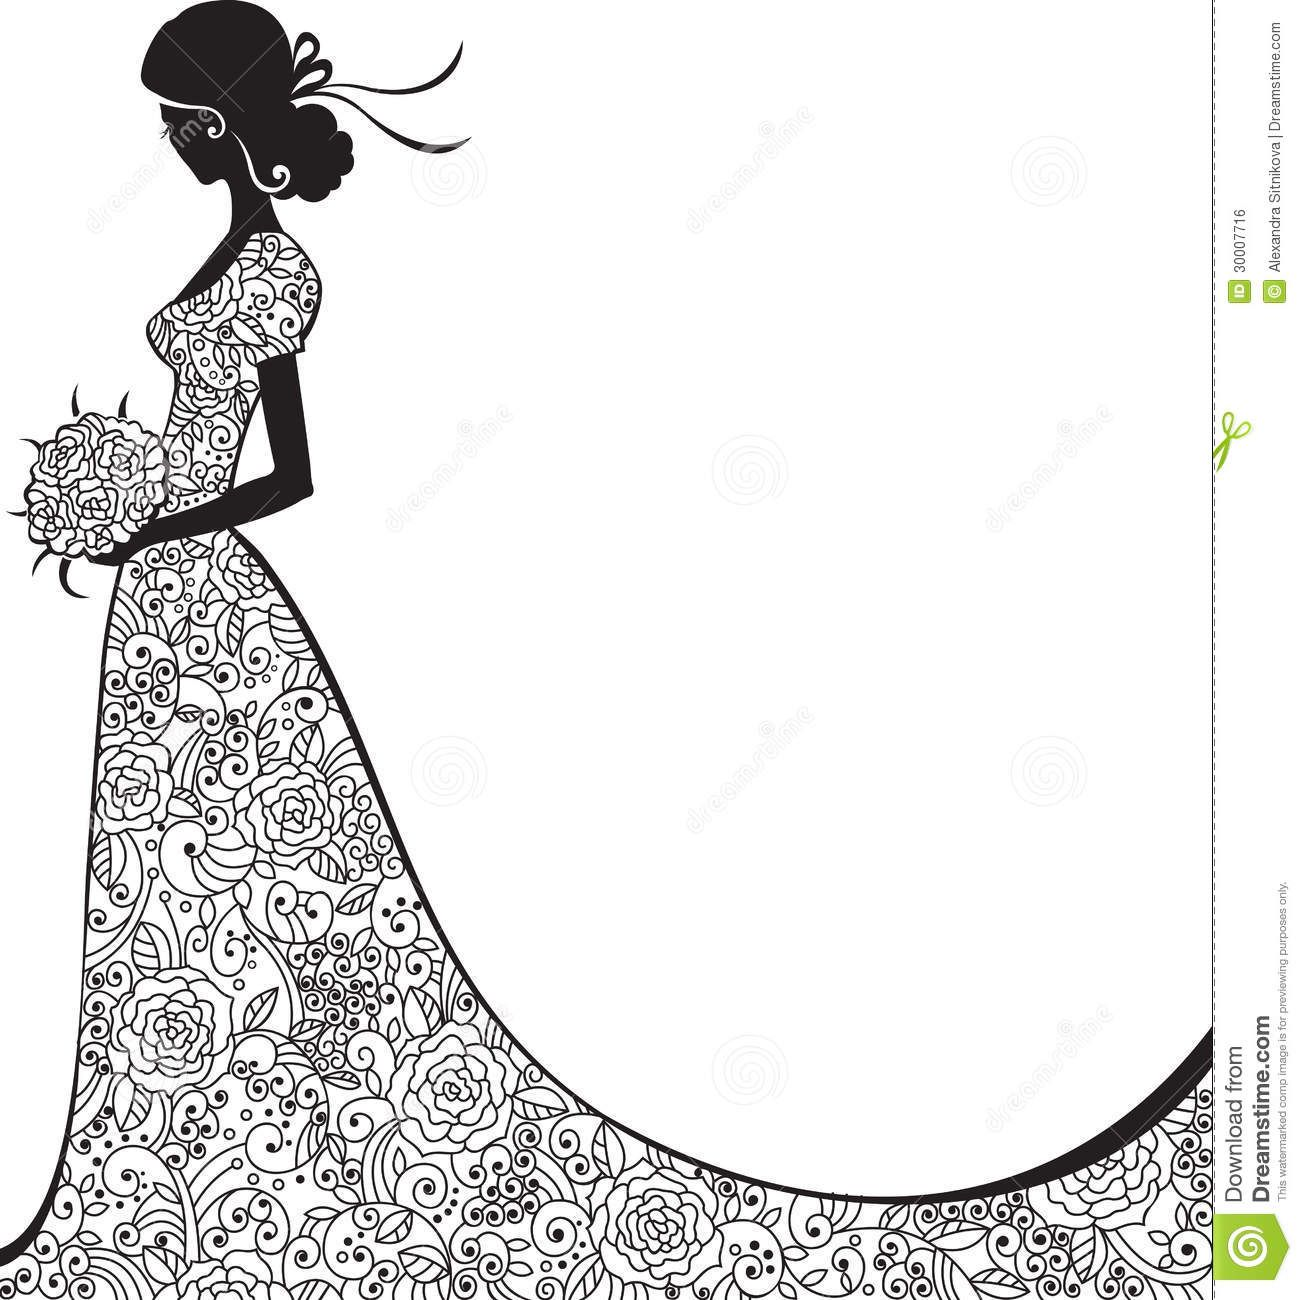 Bride Silhouette Black And White - Поиск в Google Wedding Silhouette,  Couple Silhouette, Silhouette